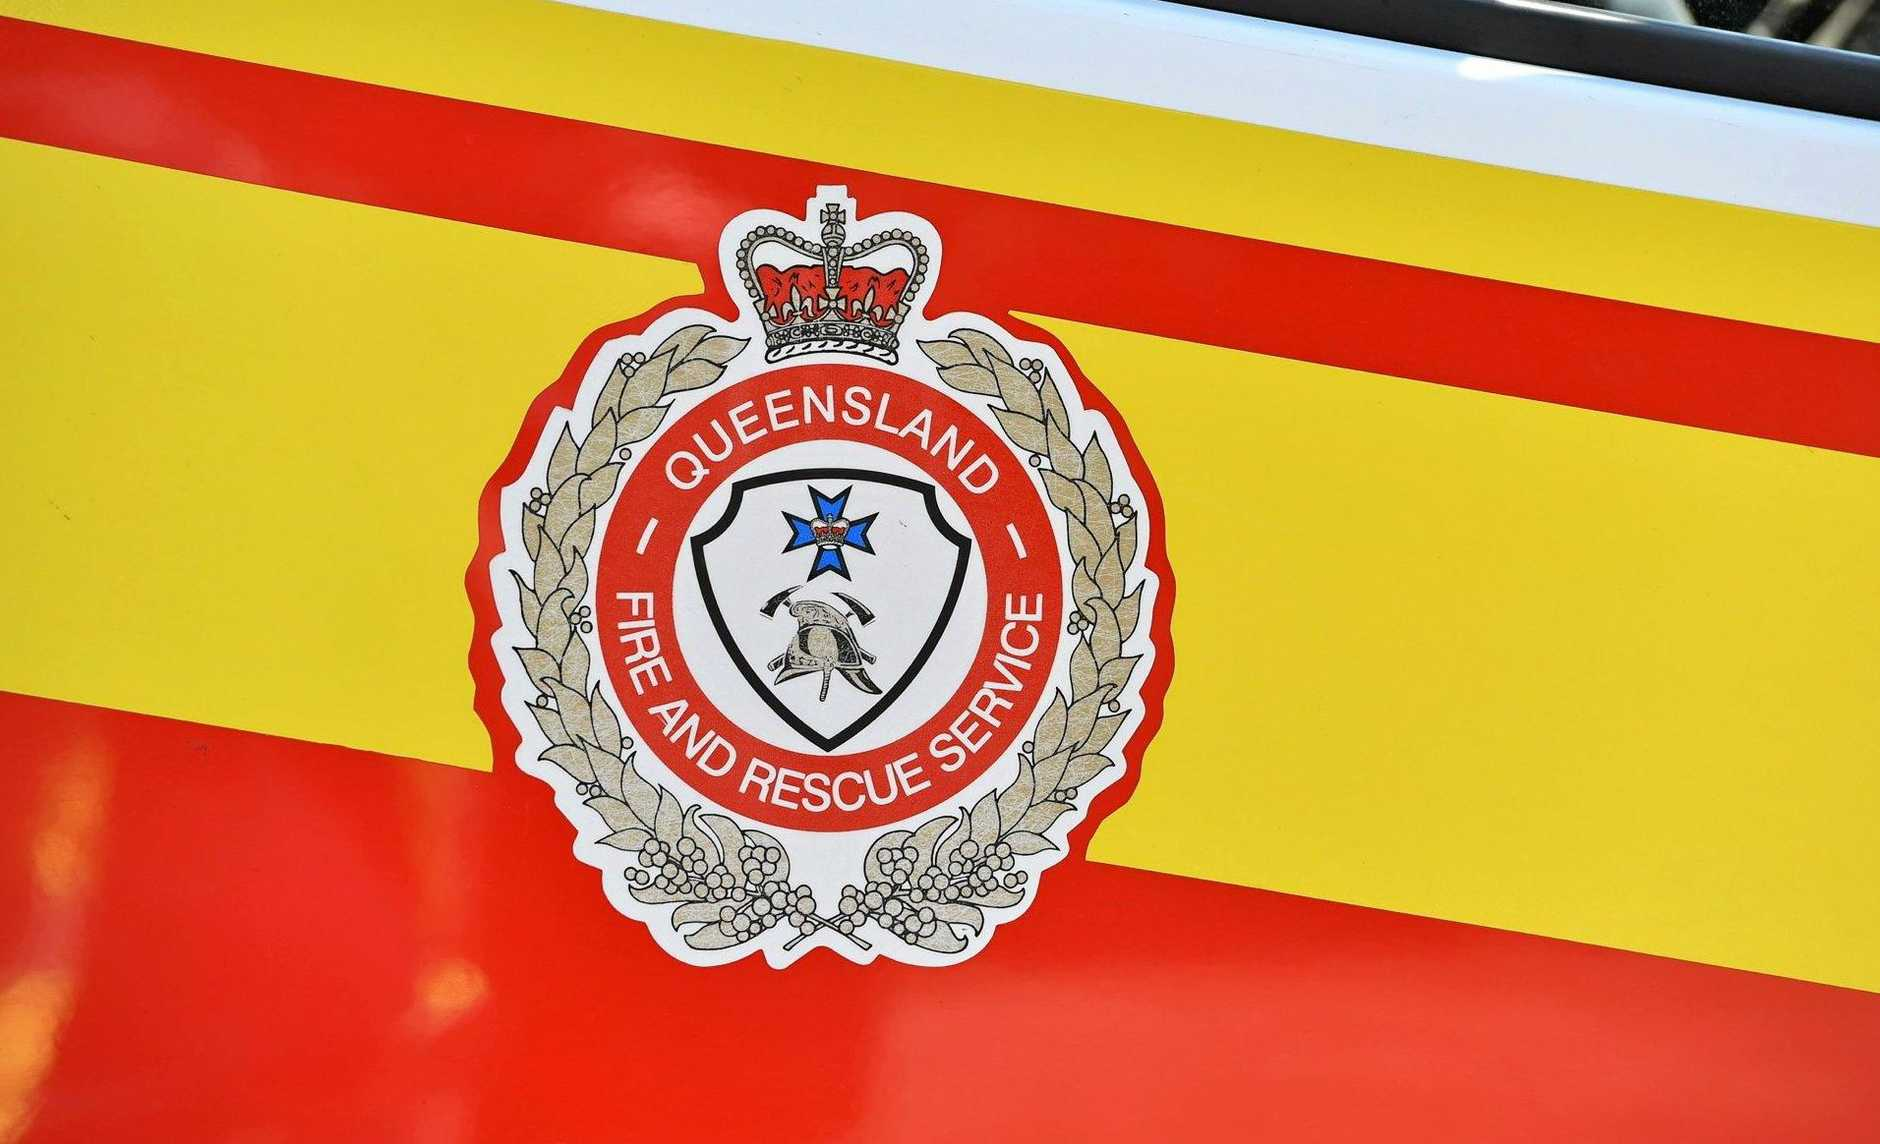 There has been a fire at a property in Glenden.